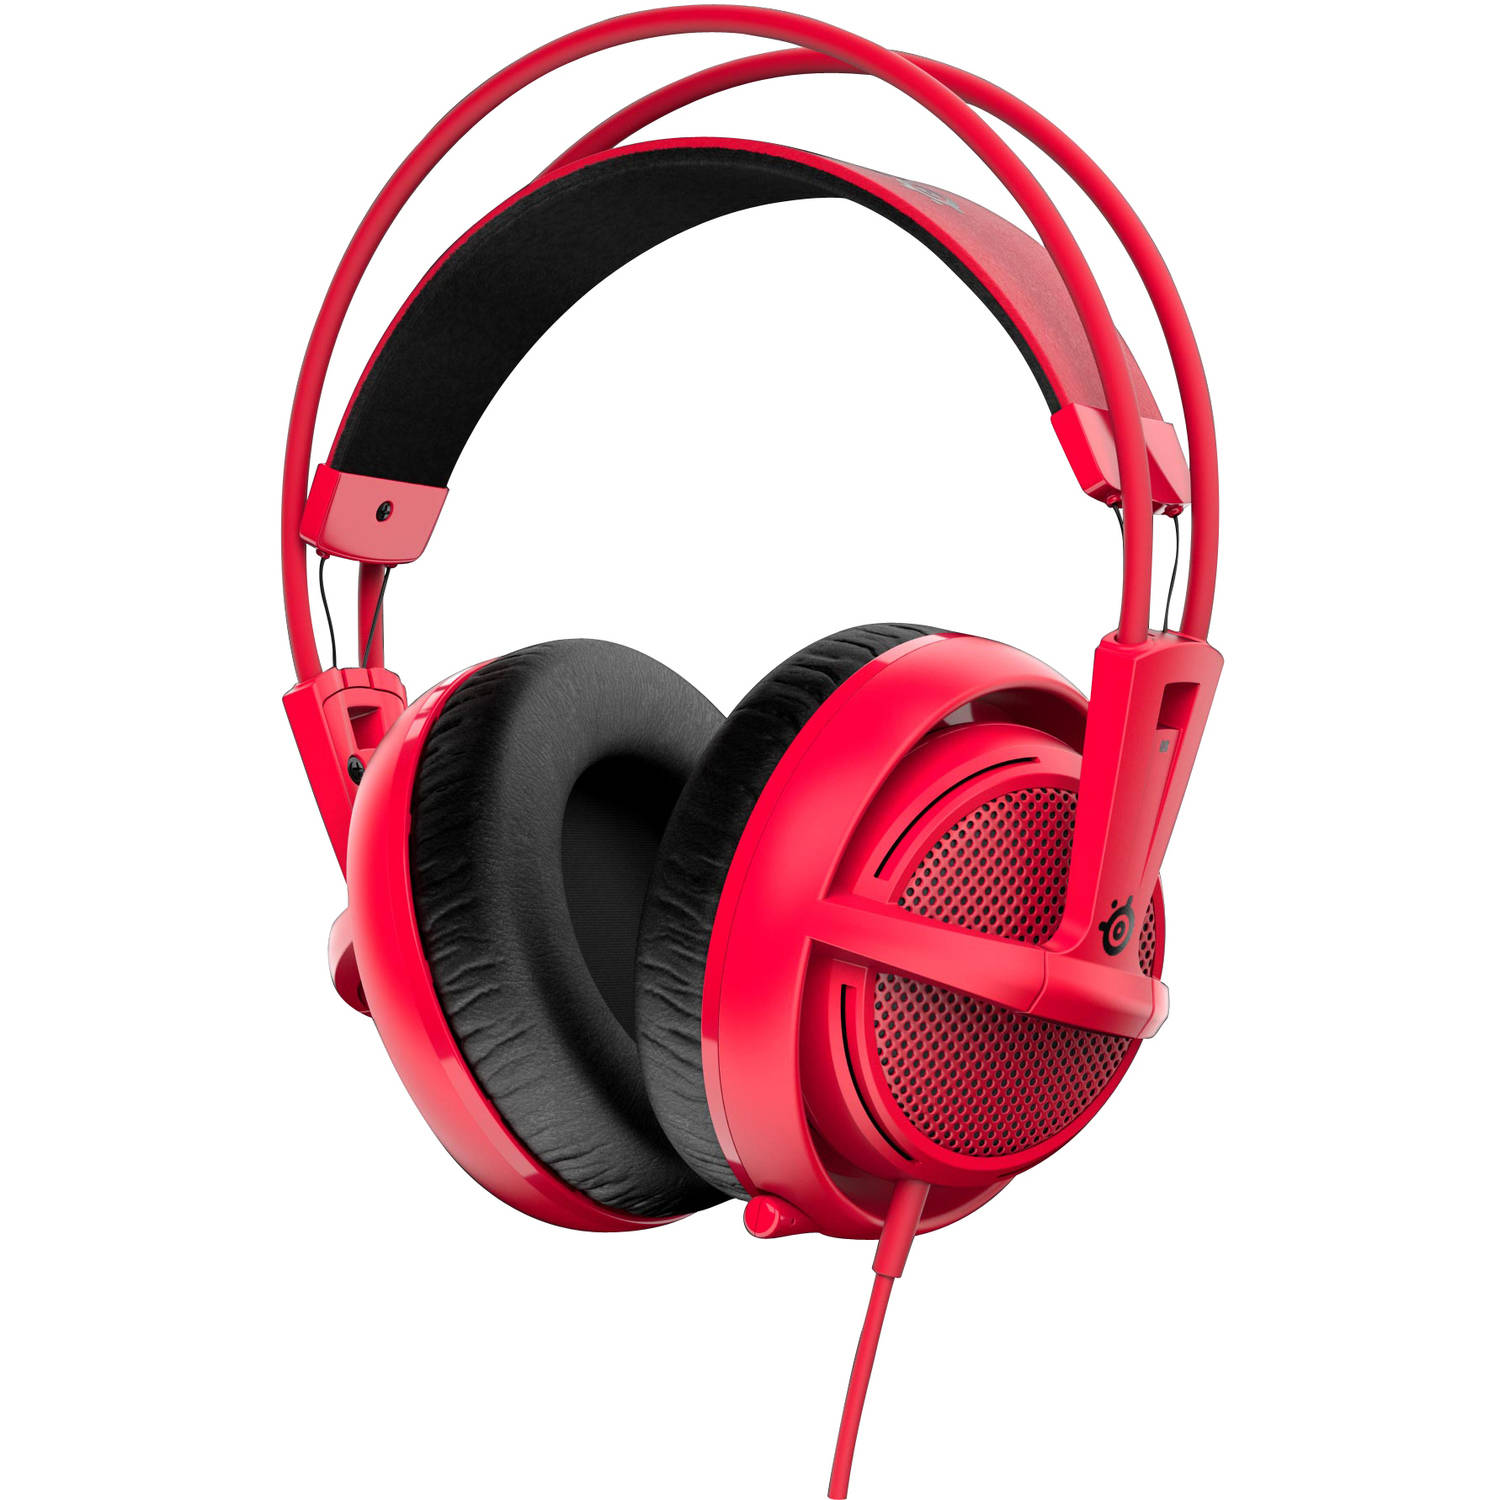 SteelSeries Siberia 200 Headset, Forged Red